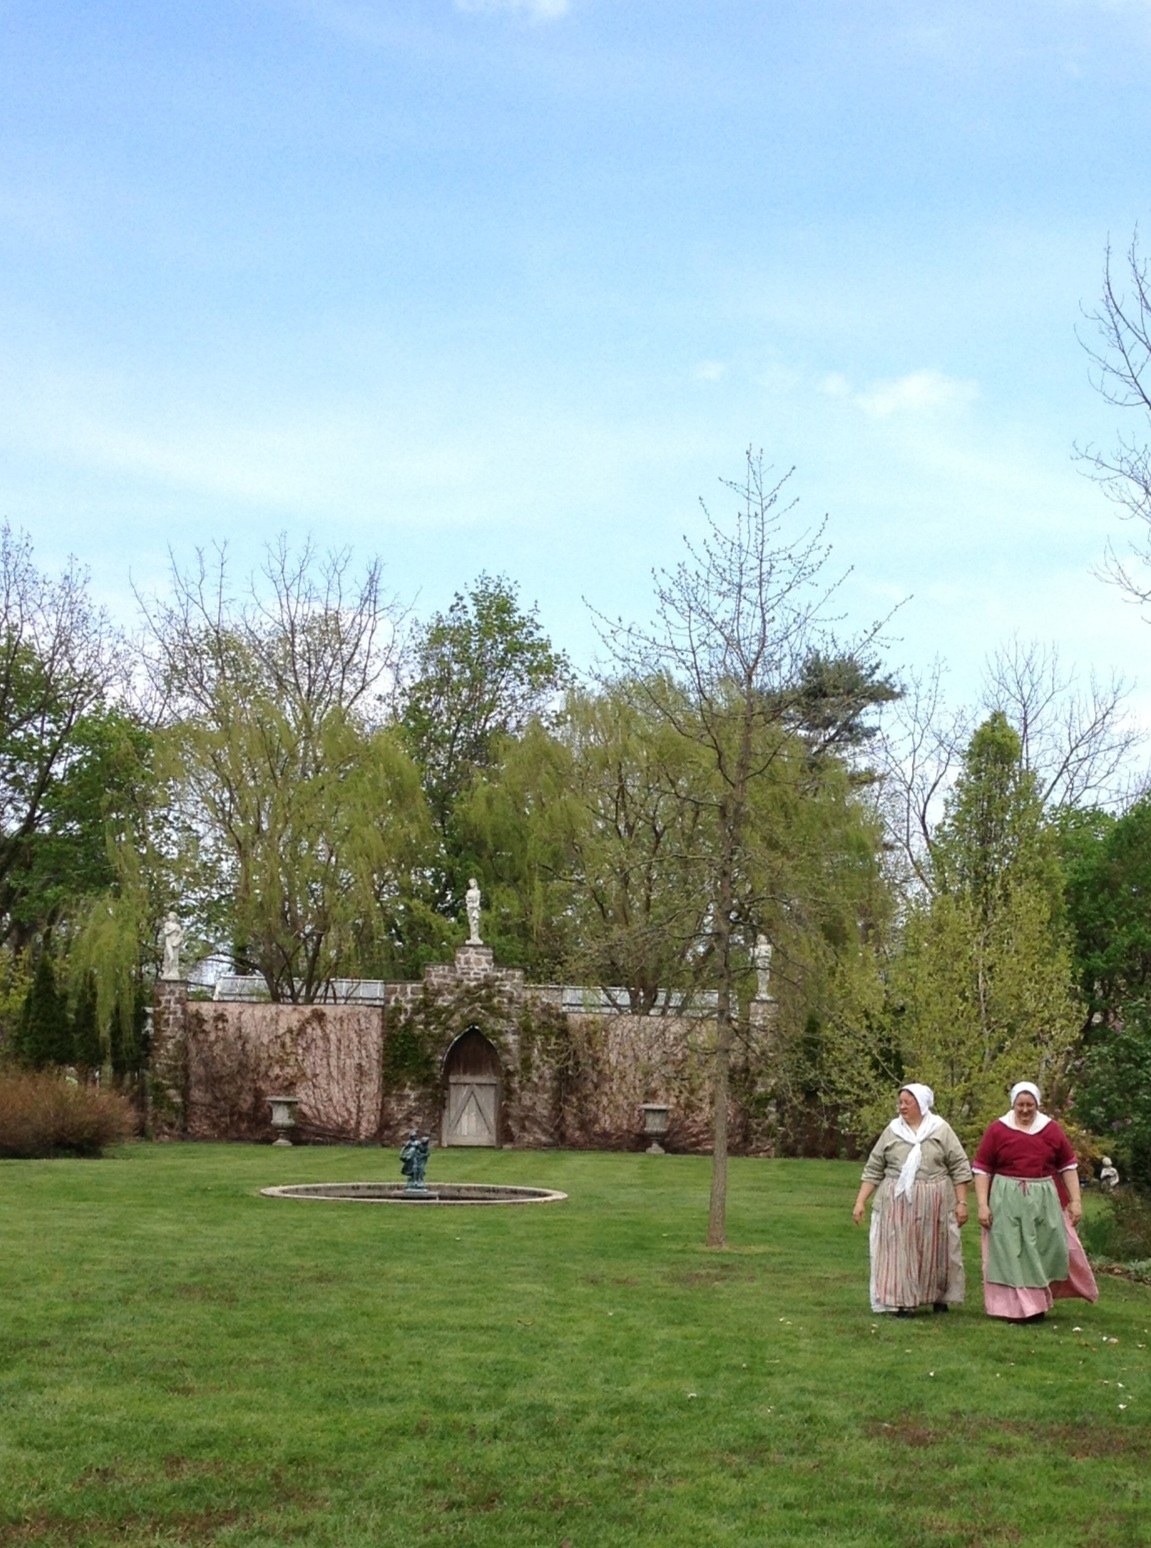 Ladies in Costume walking in Garden